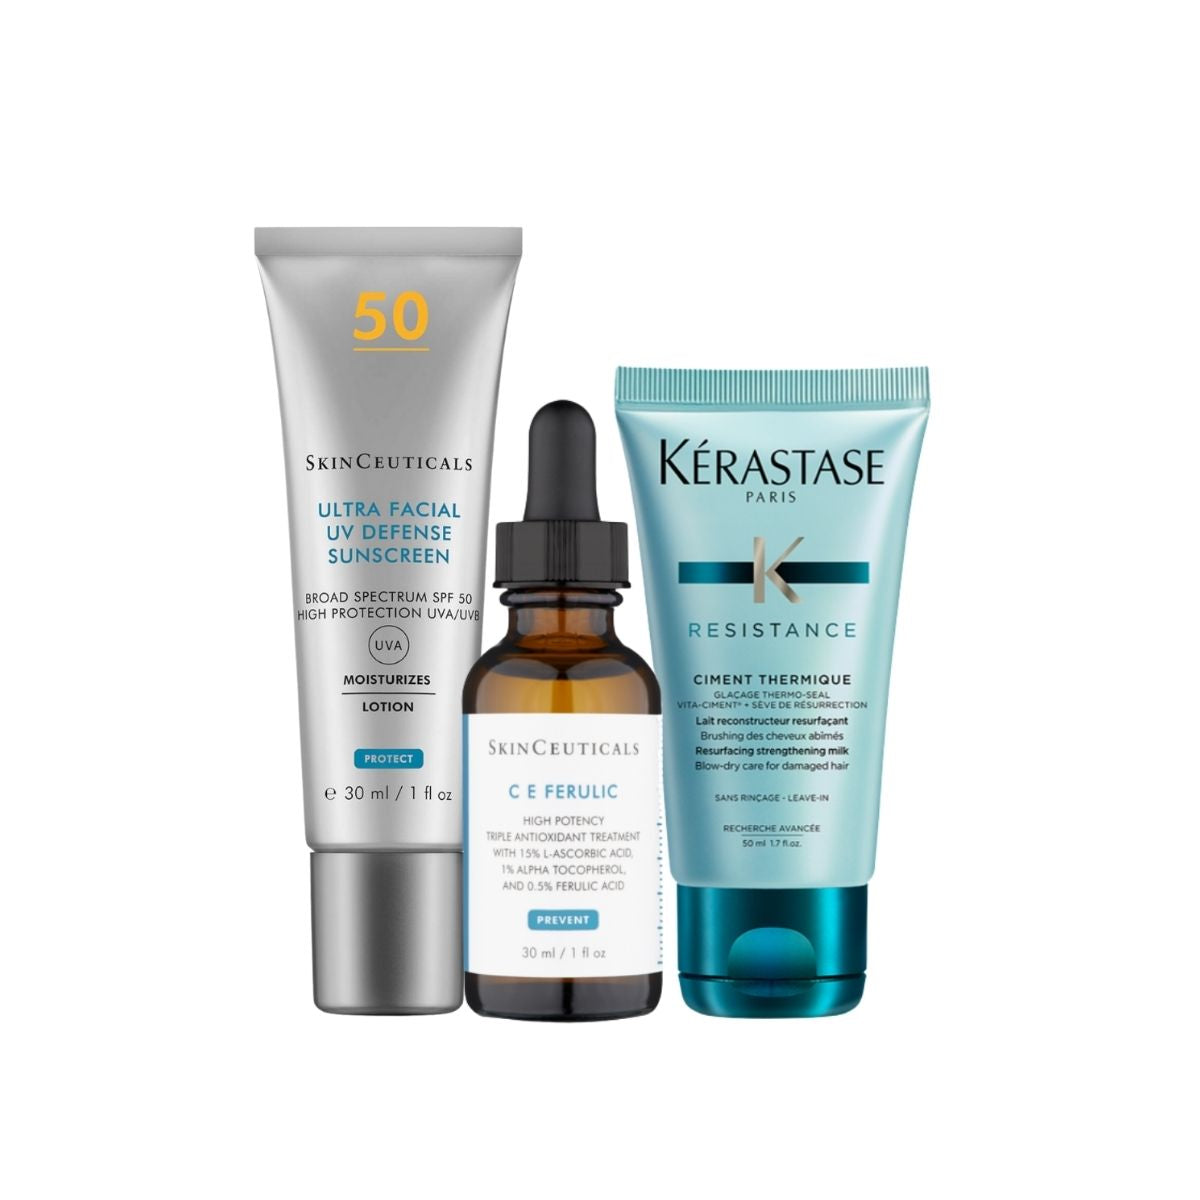 Anti-ageing Bundle: SkinCeuticals C E Ferulic 30ml + Free Kerastase Mini